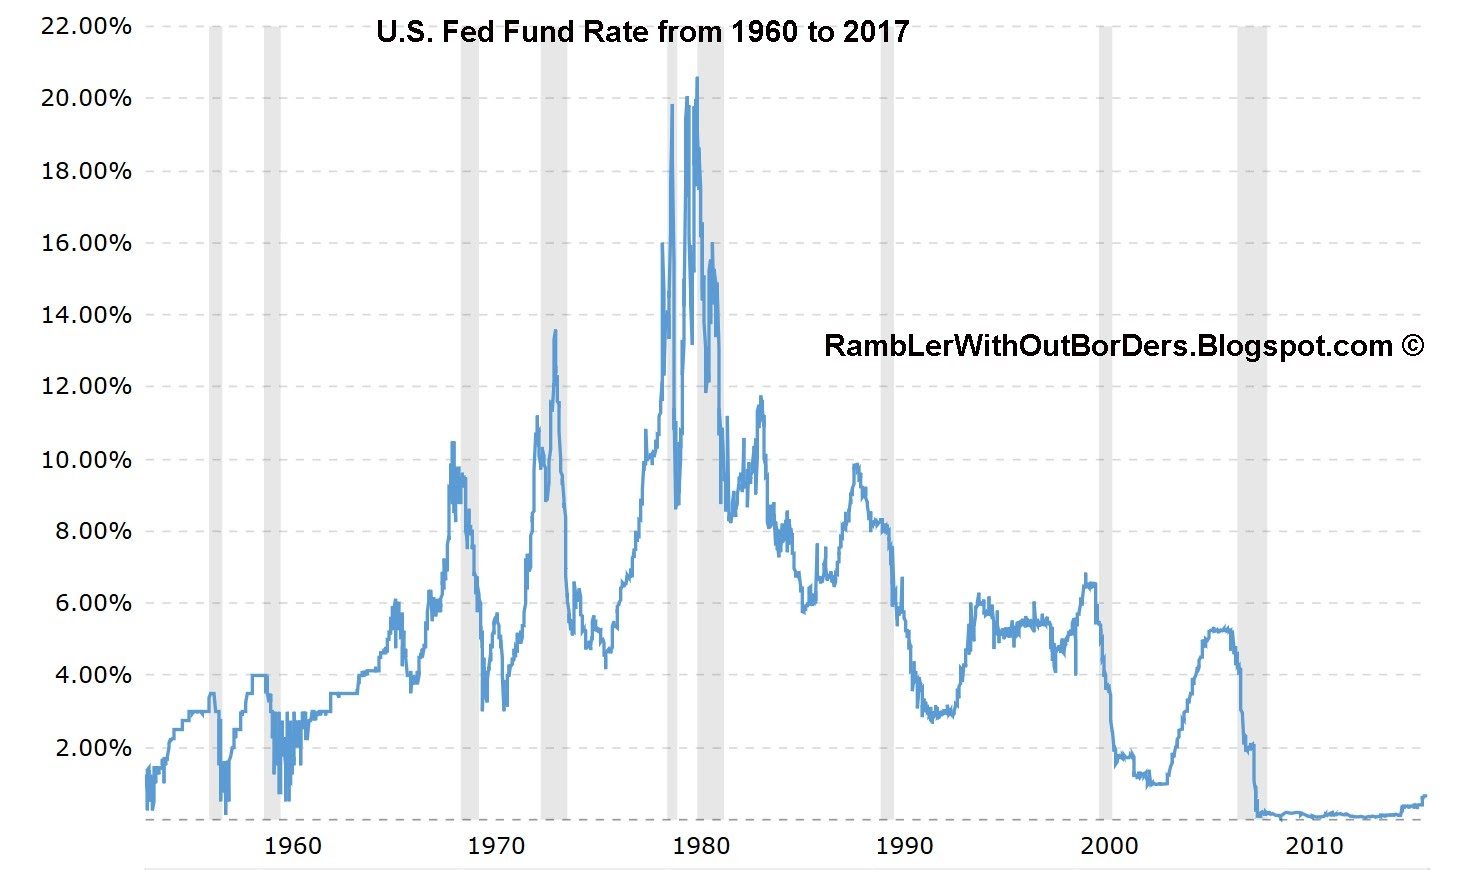 US Fed Fund Rate from 1960 to 2017